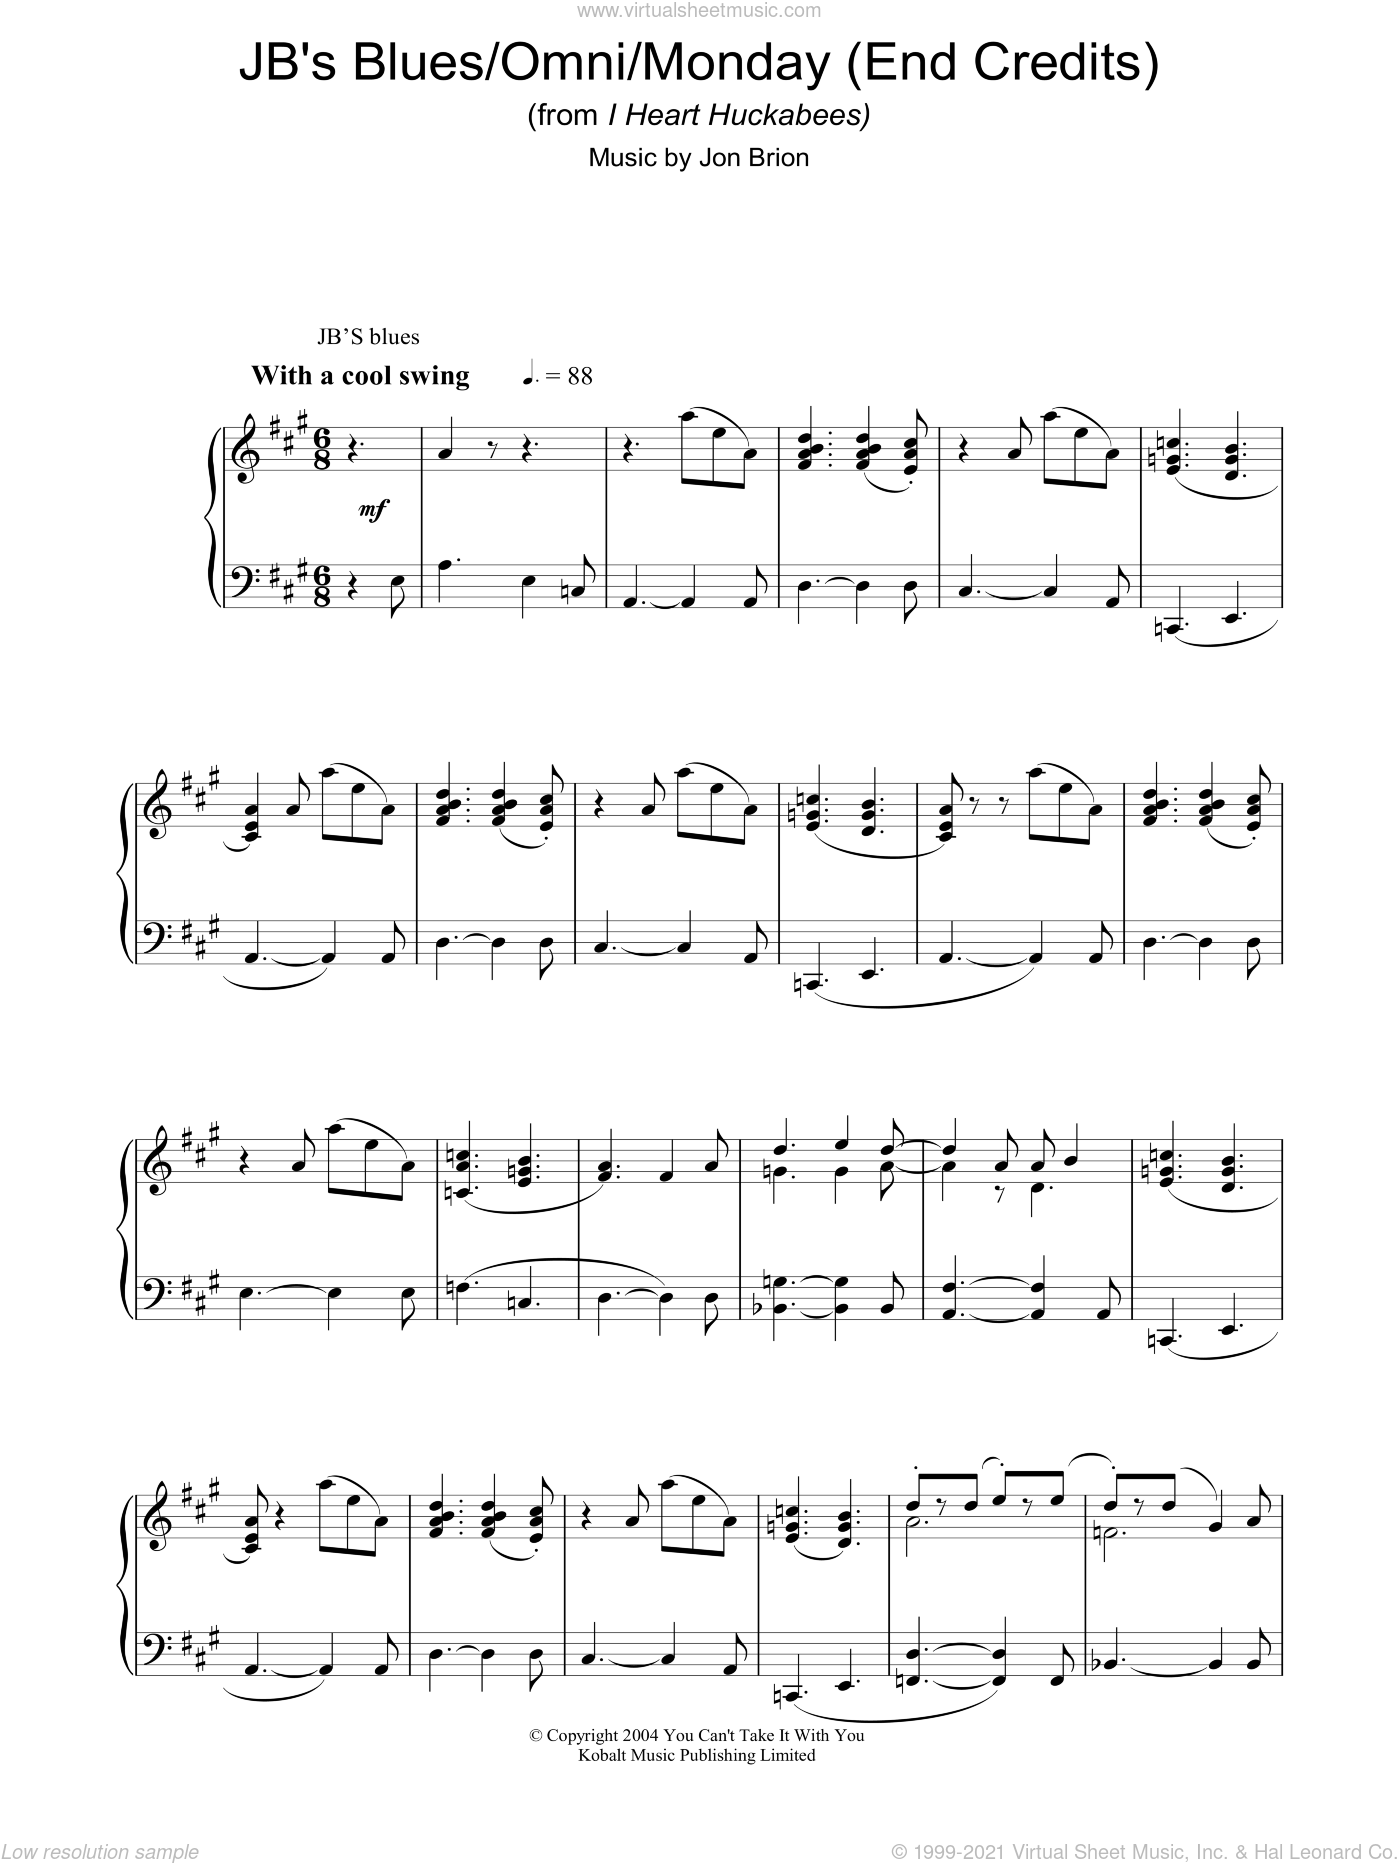 JB's Blues/Omni/Monday (End Credits) (from I Heart Huckabees) sheet music for piano solo by Jon Brion